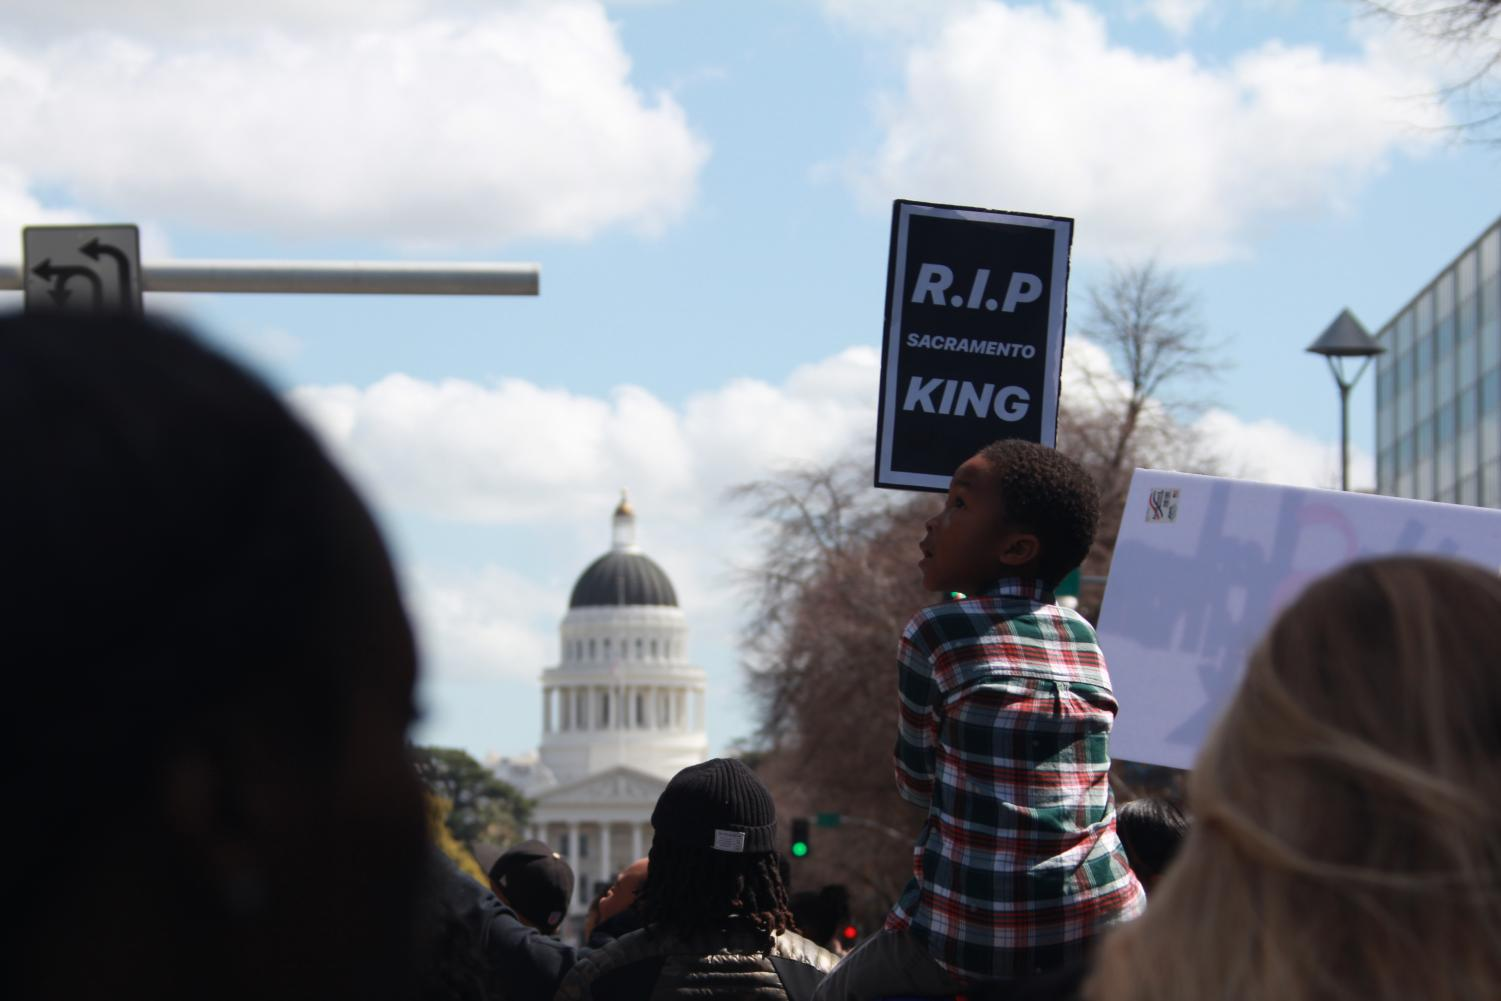 Five-year-old Elias Taylor sits upon his mother Teriah Taylor's shoulders as he holds a sign in a demonstration that took place around downtown Sacramento on Friday, March 23, 2018. Teriah said that she attended the march and brought her son to the demonstration, held in response to the shooting of Stephon Clark by Sacramento Police, because.